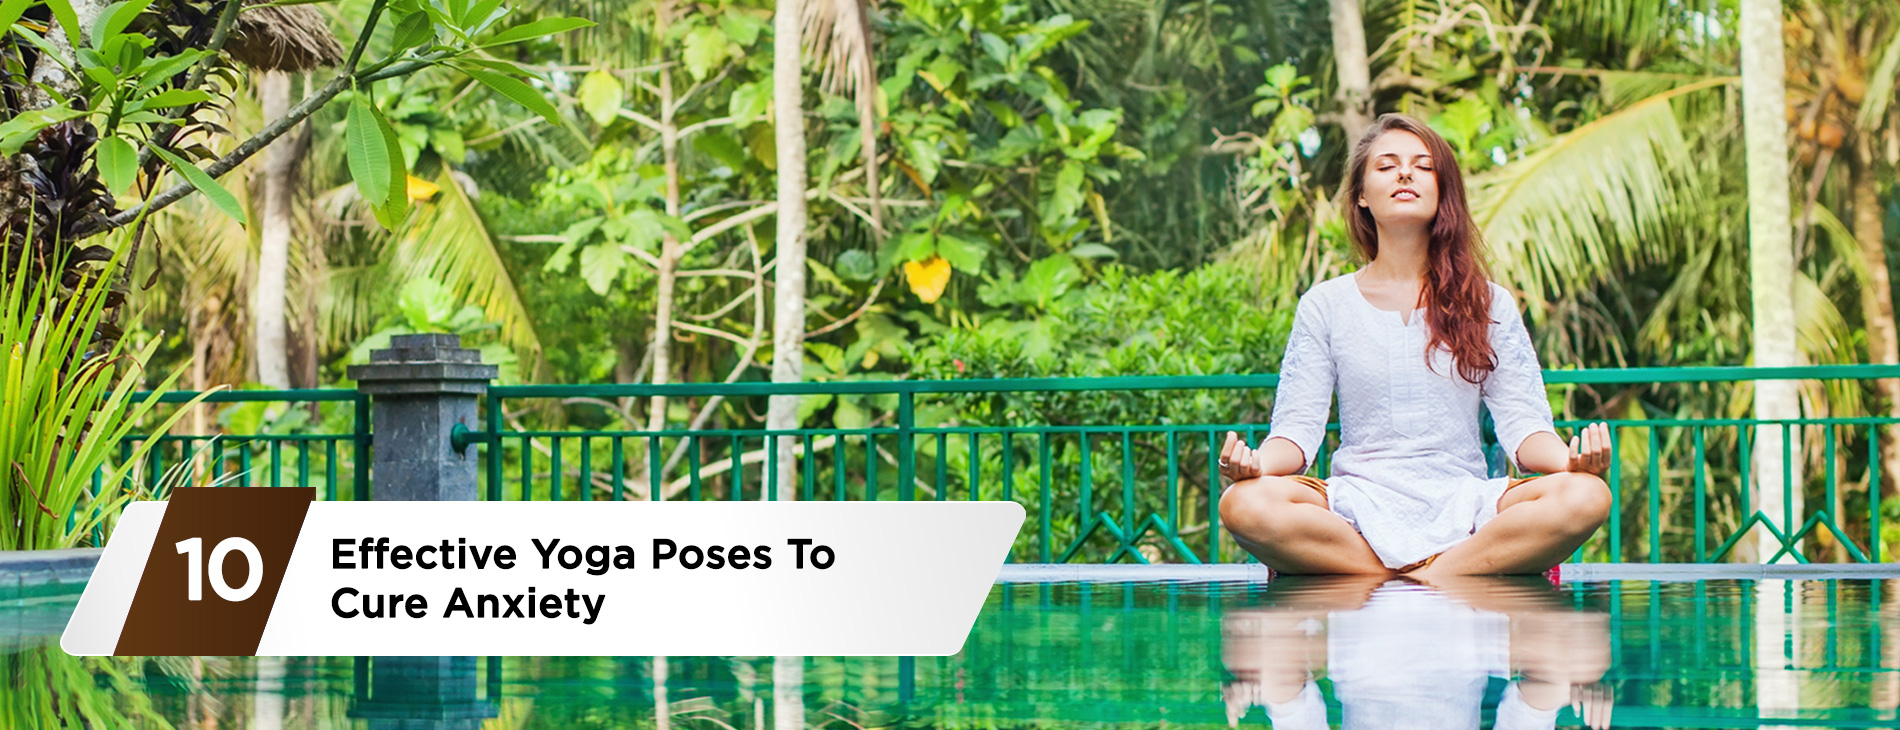 Effective-Yoga-Poses-To-Cure-Anxiety